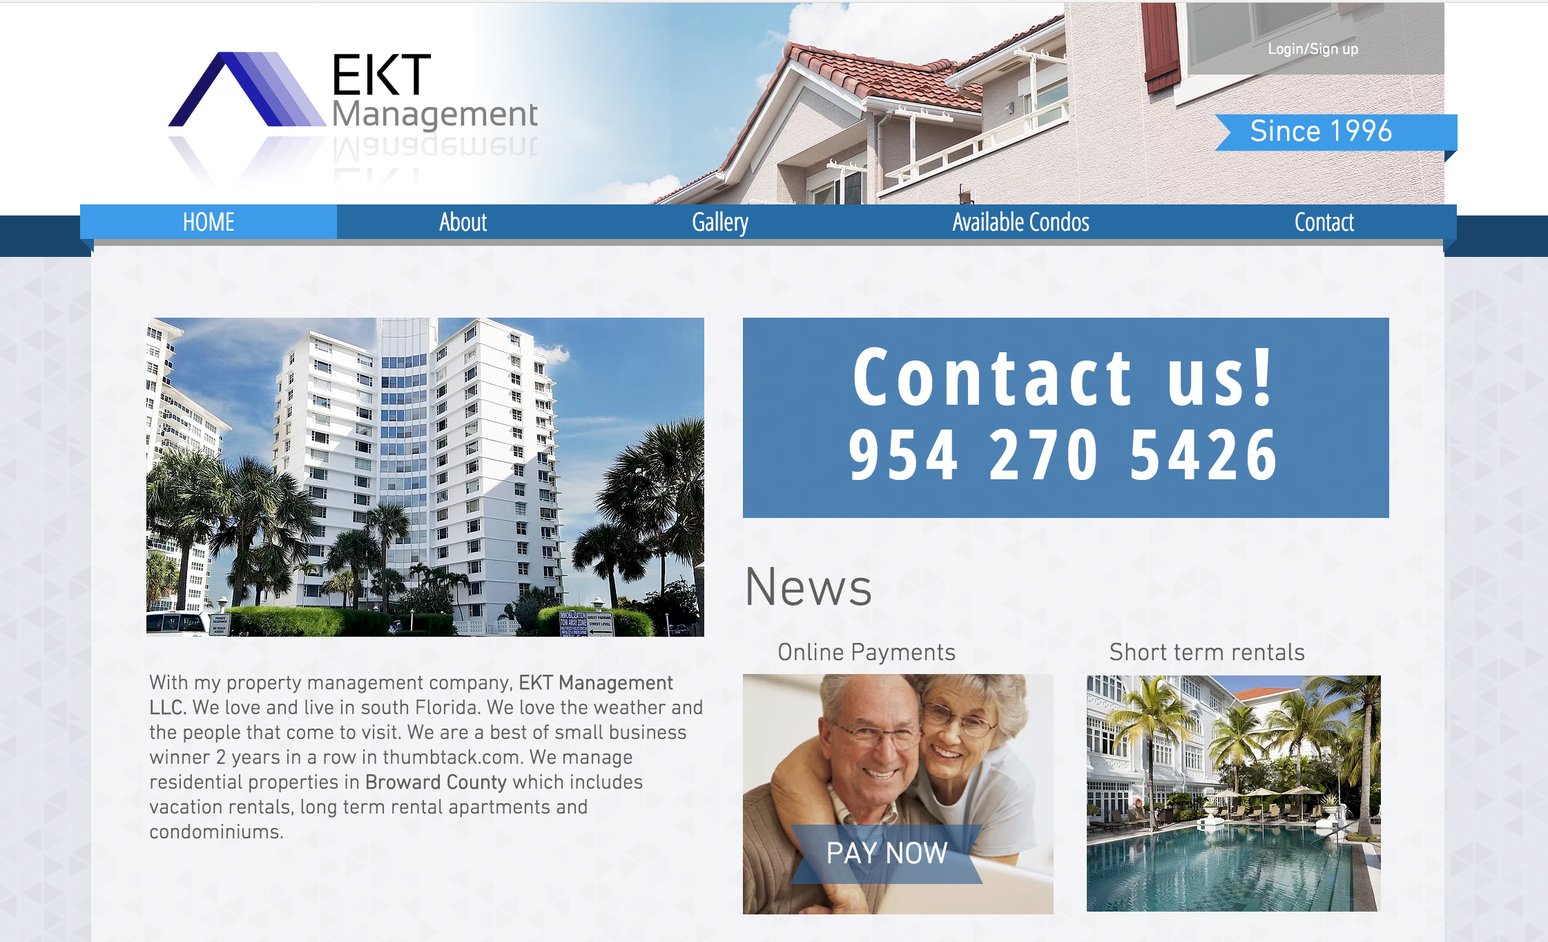 EKT Management